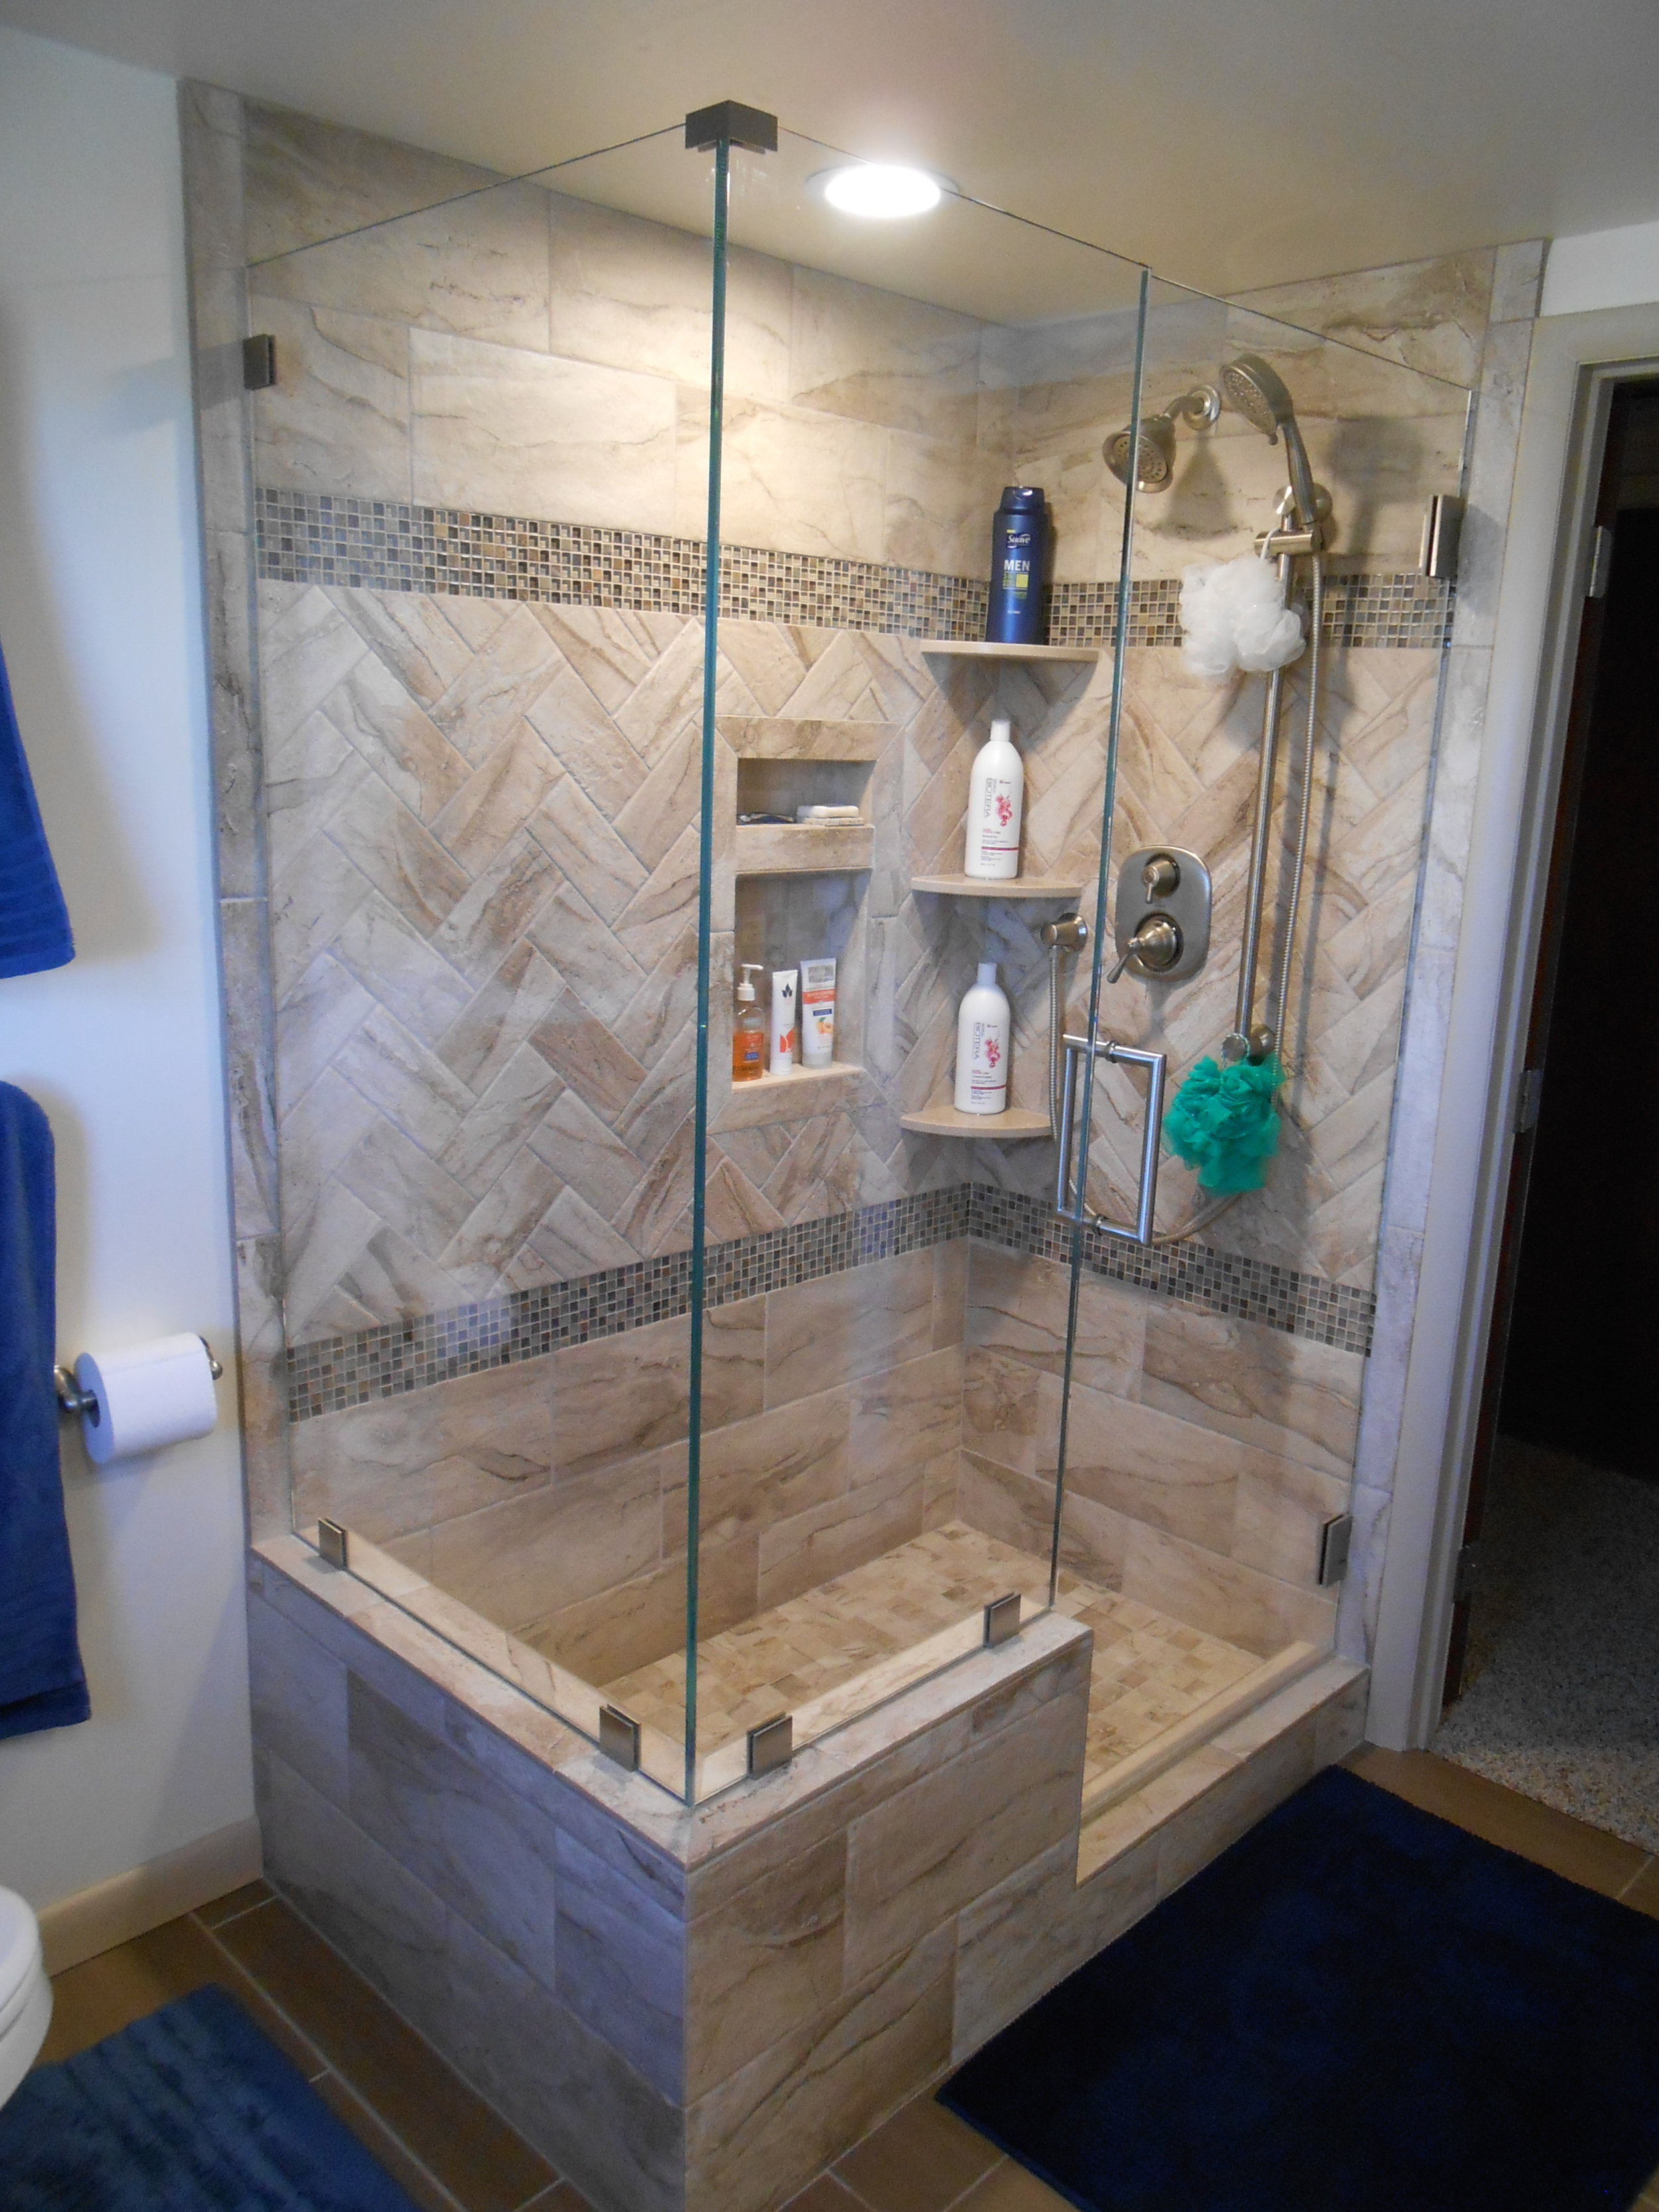 BATHROOMS - Explore the latest products, a variety of styles, and colors that are availablefor your bathroom remodel. The end result will please you in both design and function.